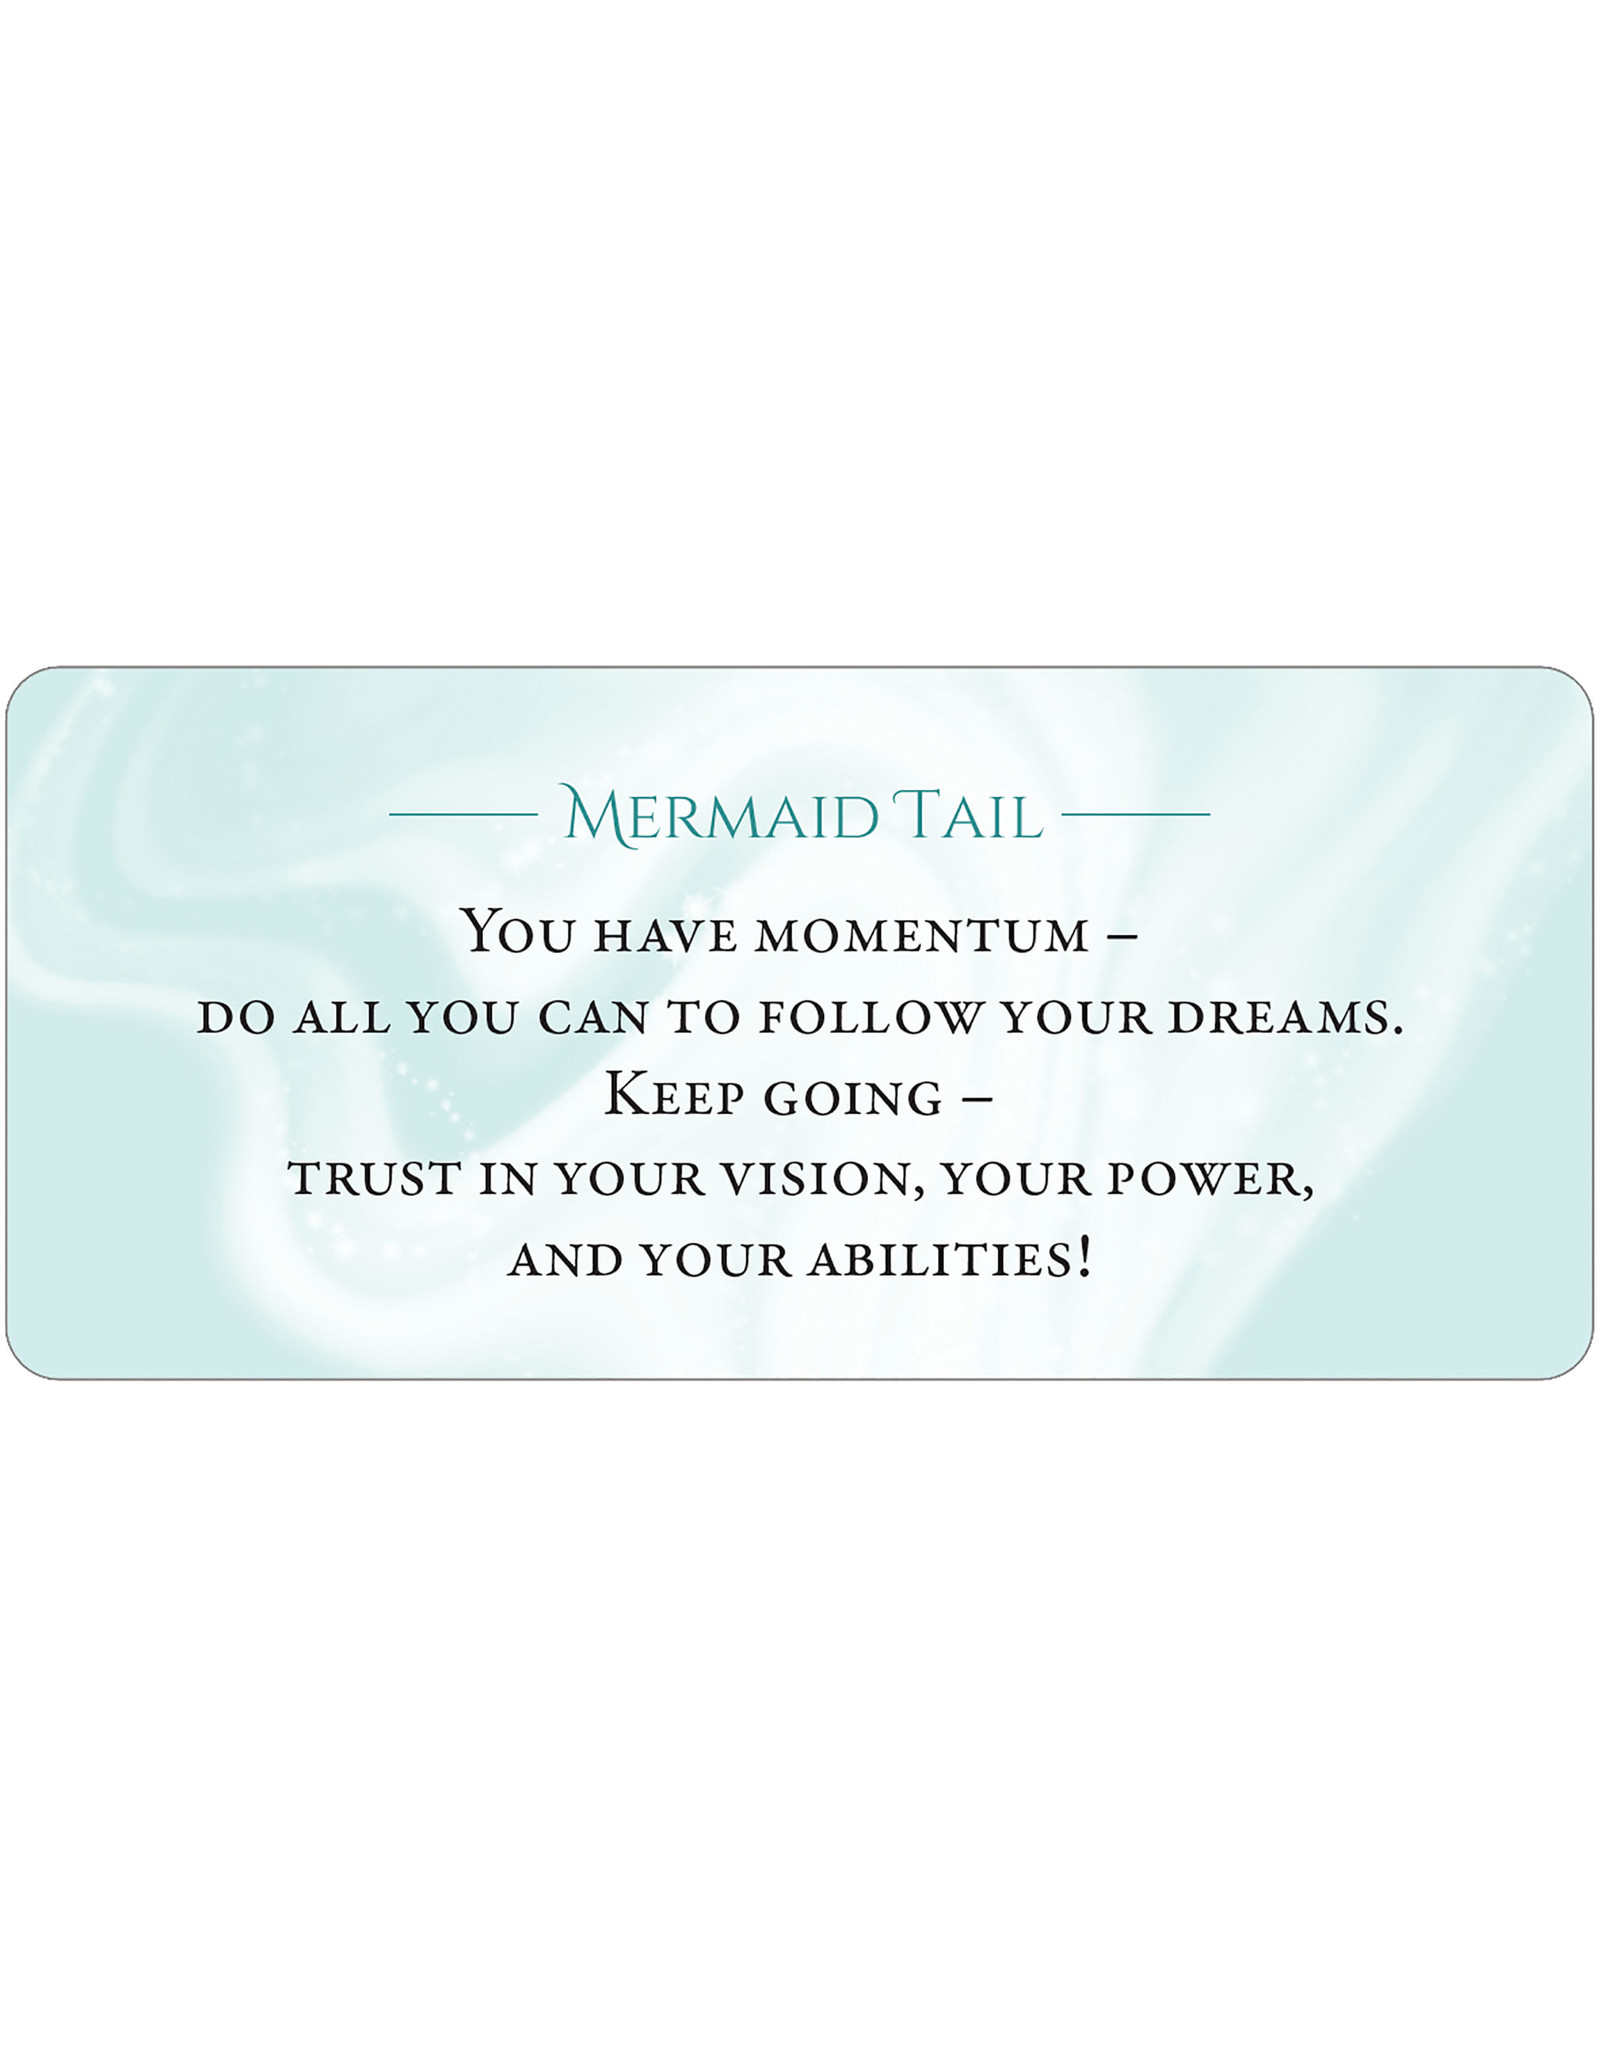 US Games Magickal Messages from the Mermaids